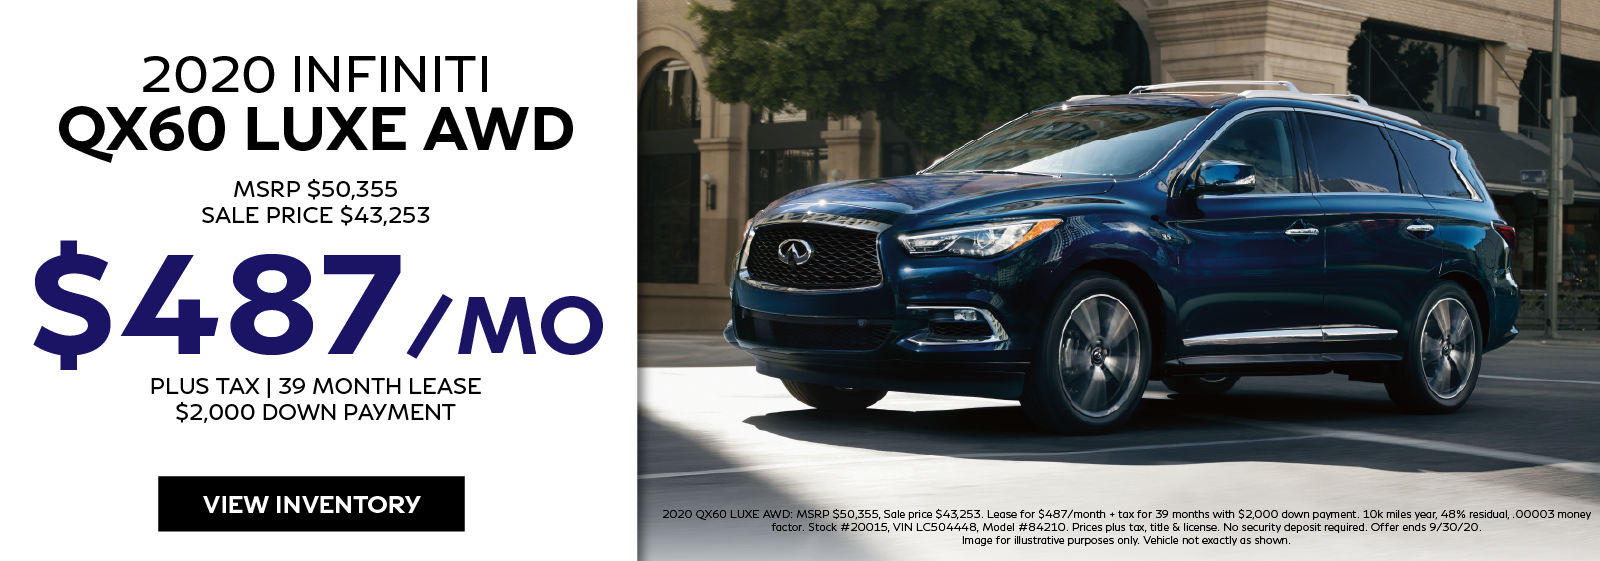 Lease the 2020 QX60 LUXE AWD for $487 per month for 39 months. Click to view inventory.